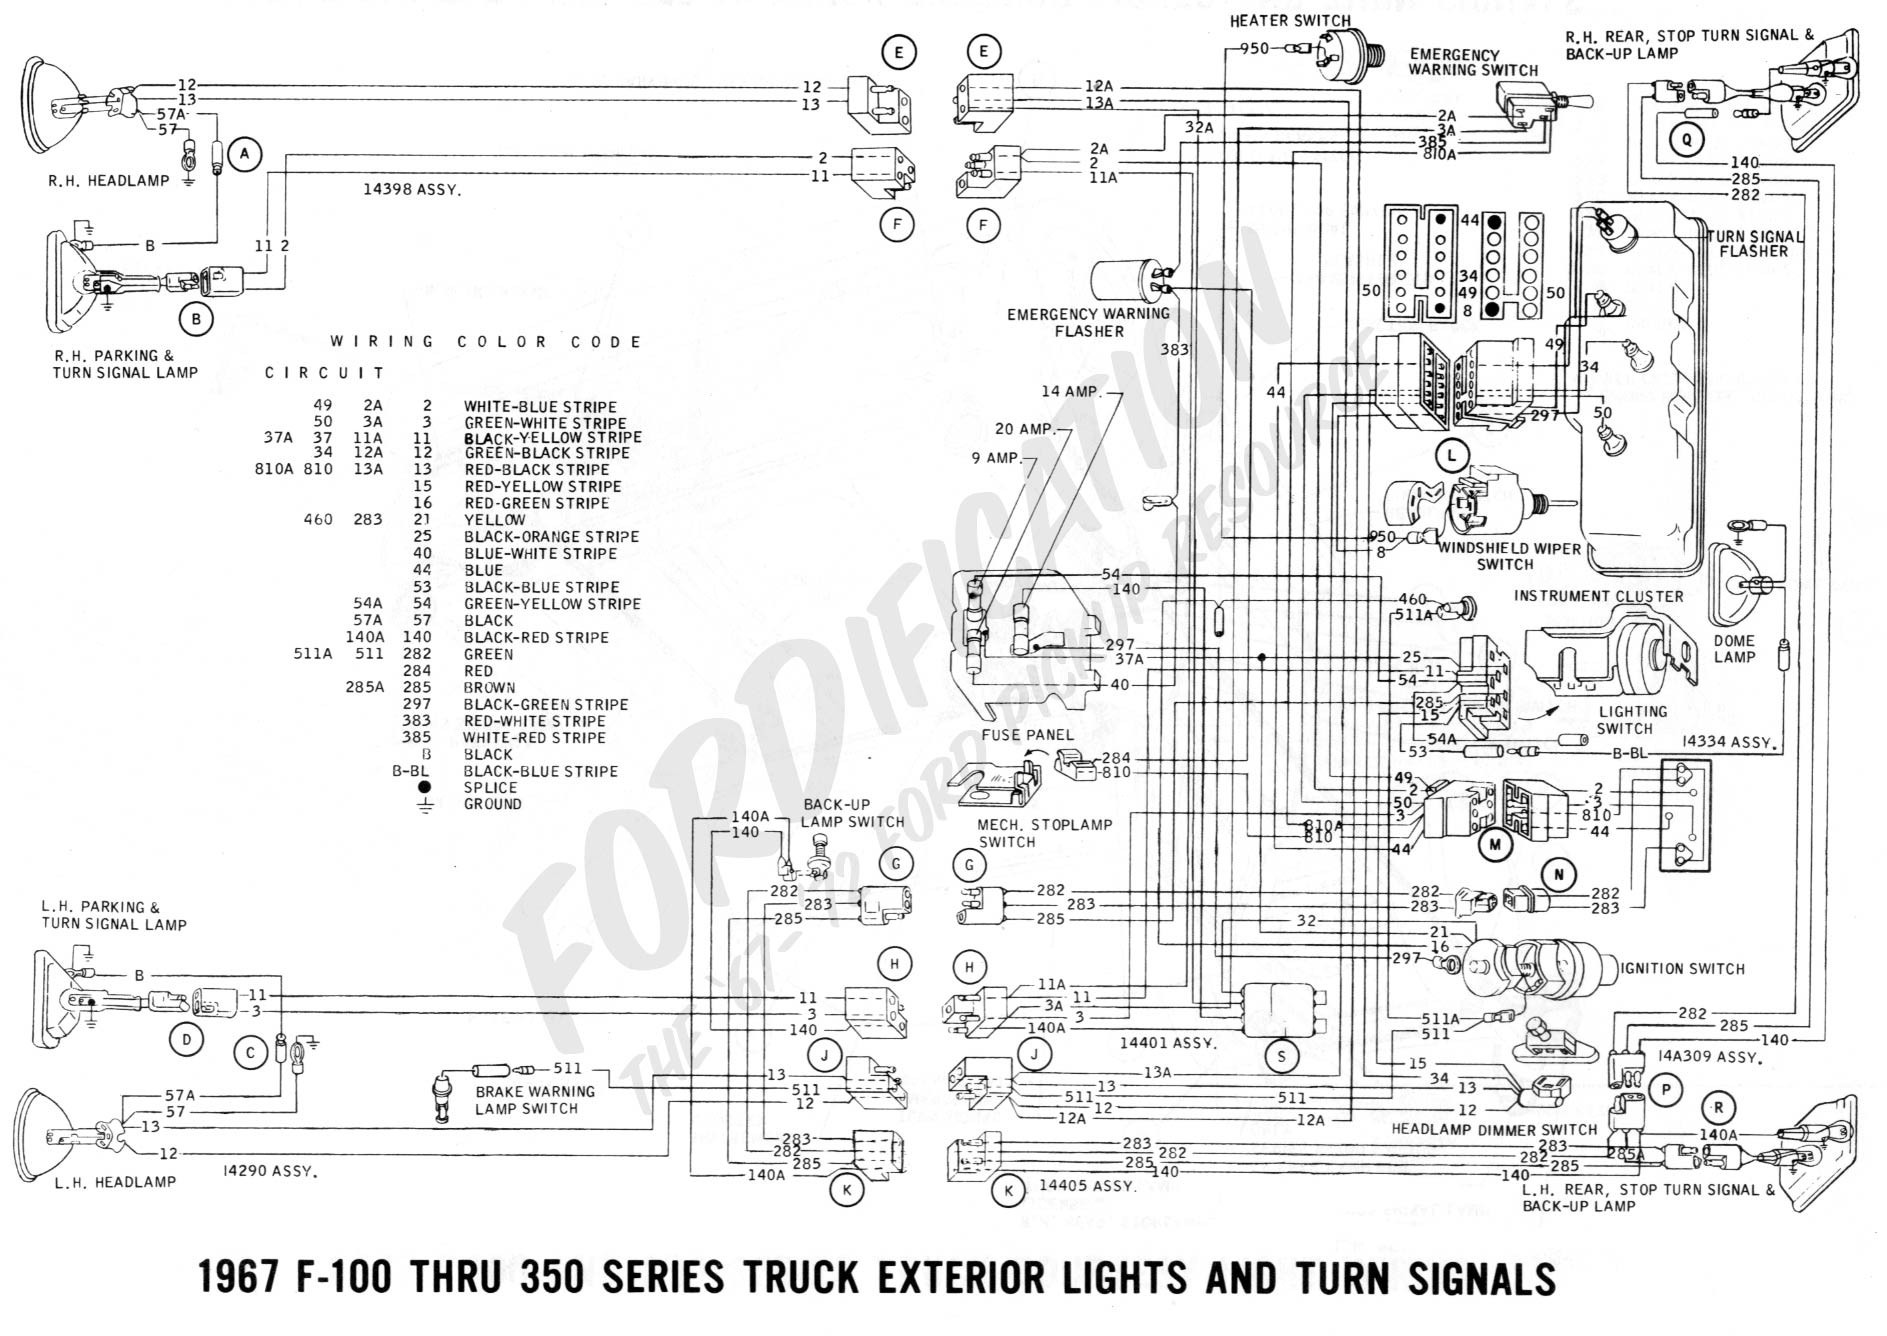 hight resolution of 1988 ford f700 fuel pump wiring wiring diagram used1988 ford f700 fuel pump wiring manual e